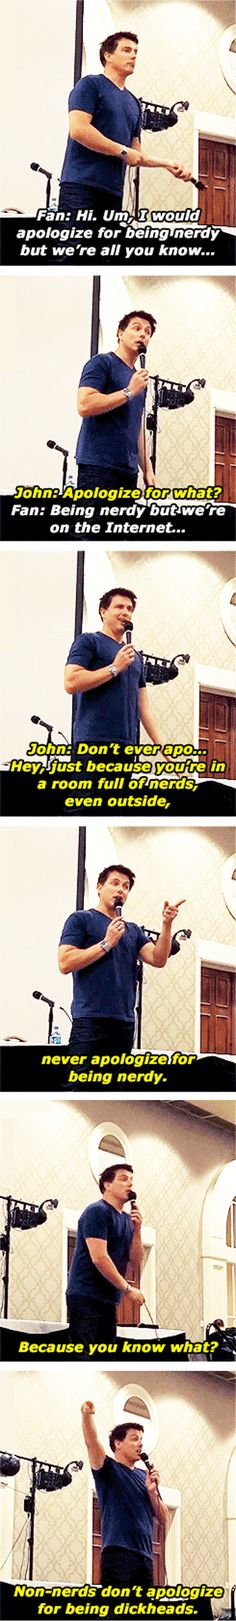 Love John Barrowman!